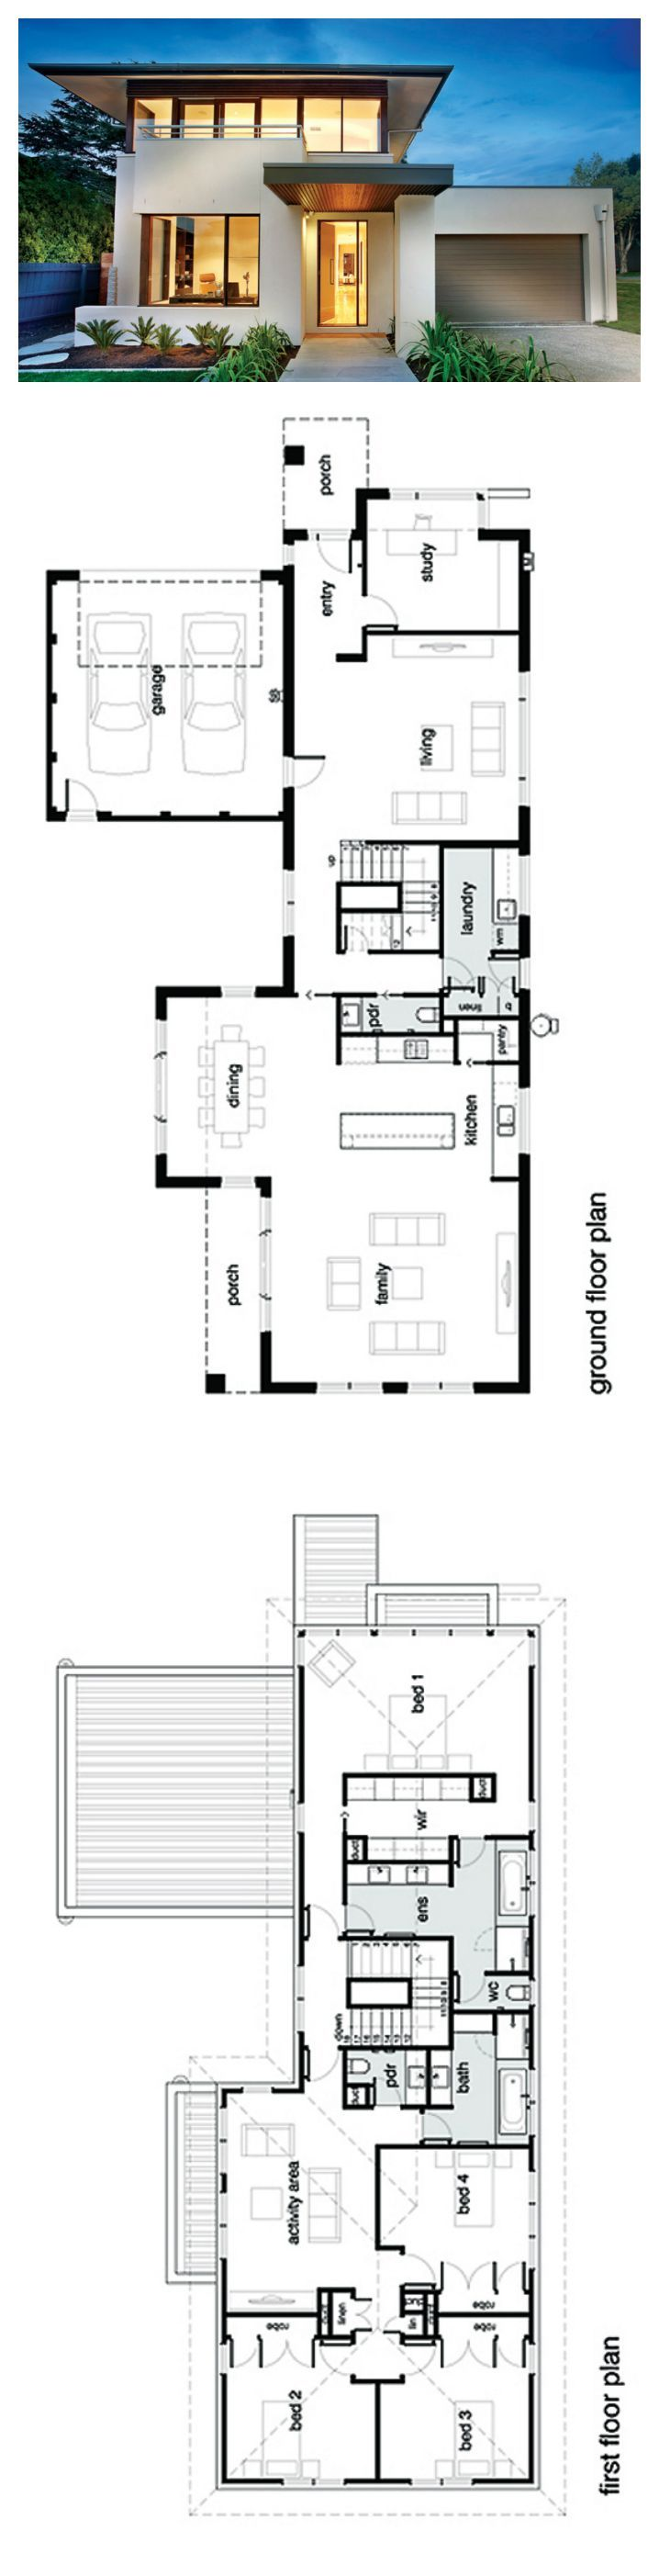 Best 25 modern house plans ideas on pinterest for Nice modern house plans